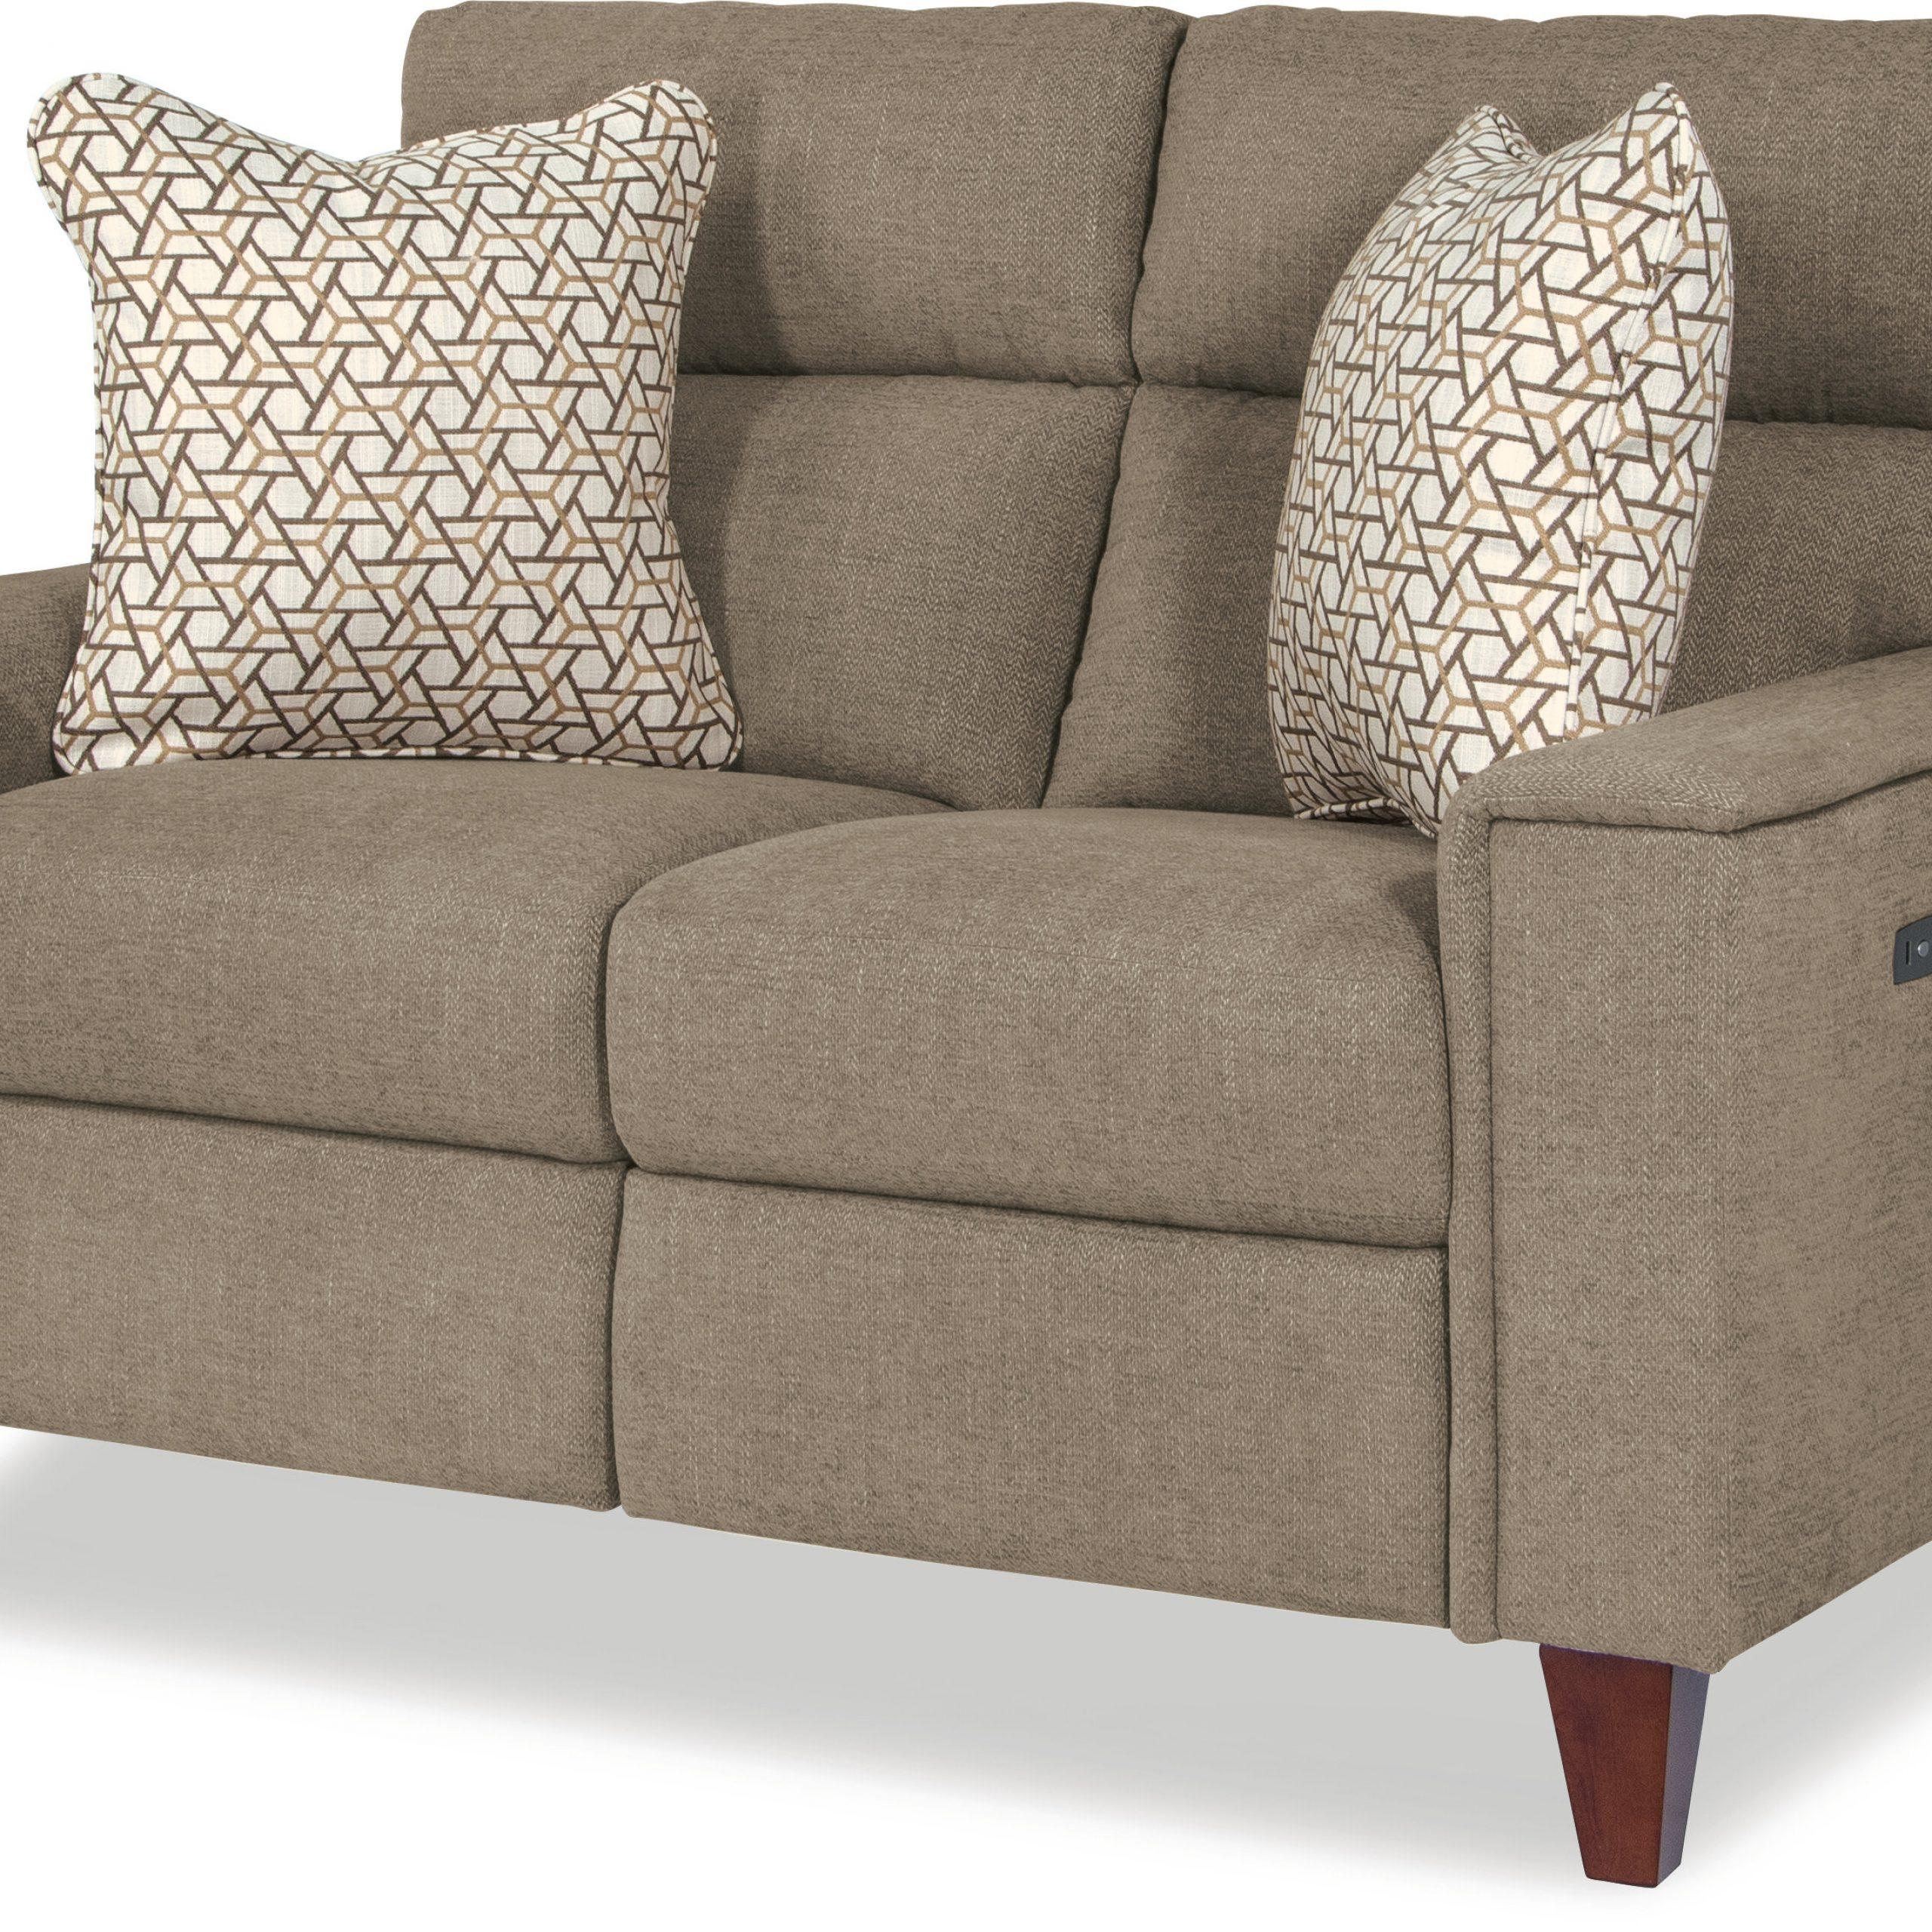 Dayse Contemporary Loveseats With Cushion For 2020 Ryder Duo® Reclining Loveseat (View 24 of 25)